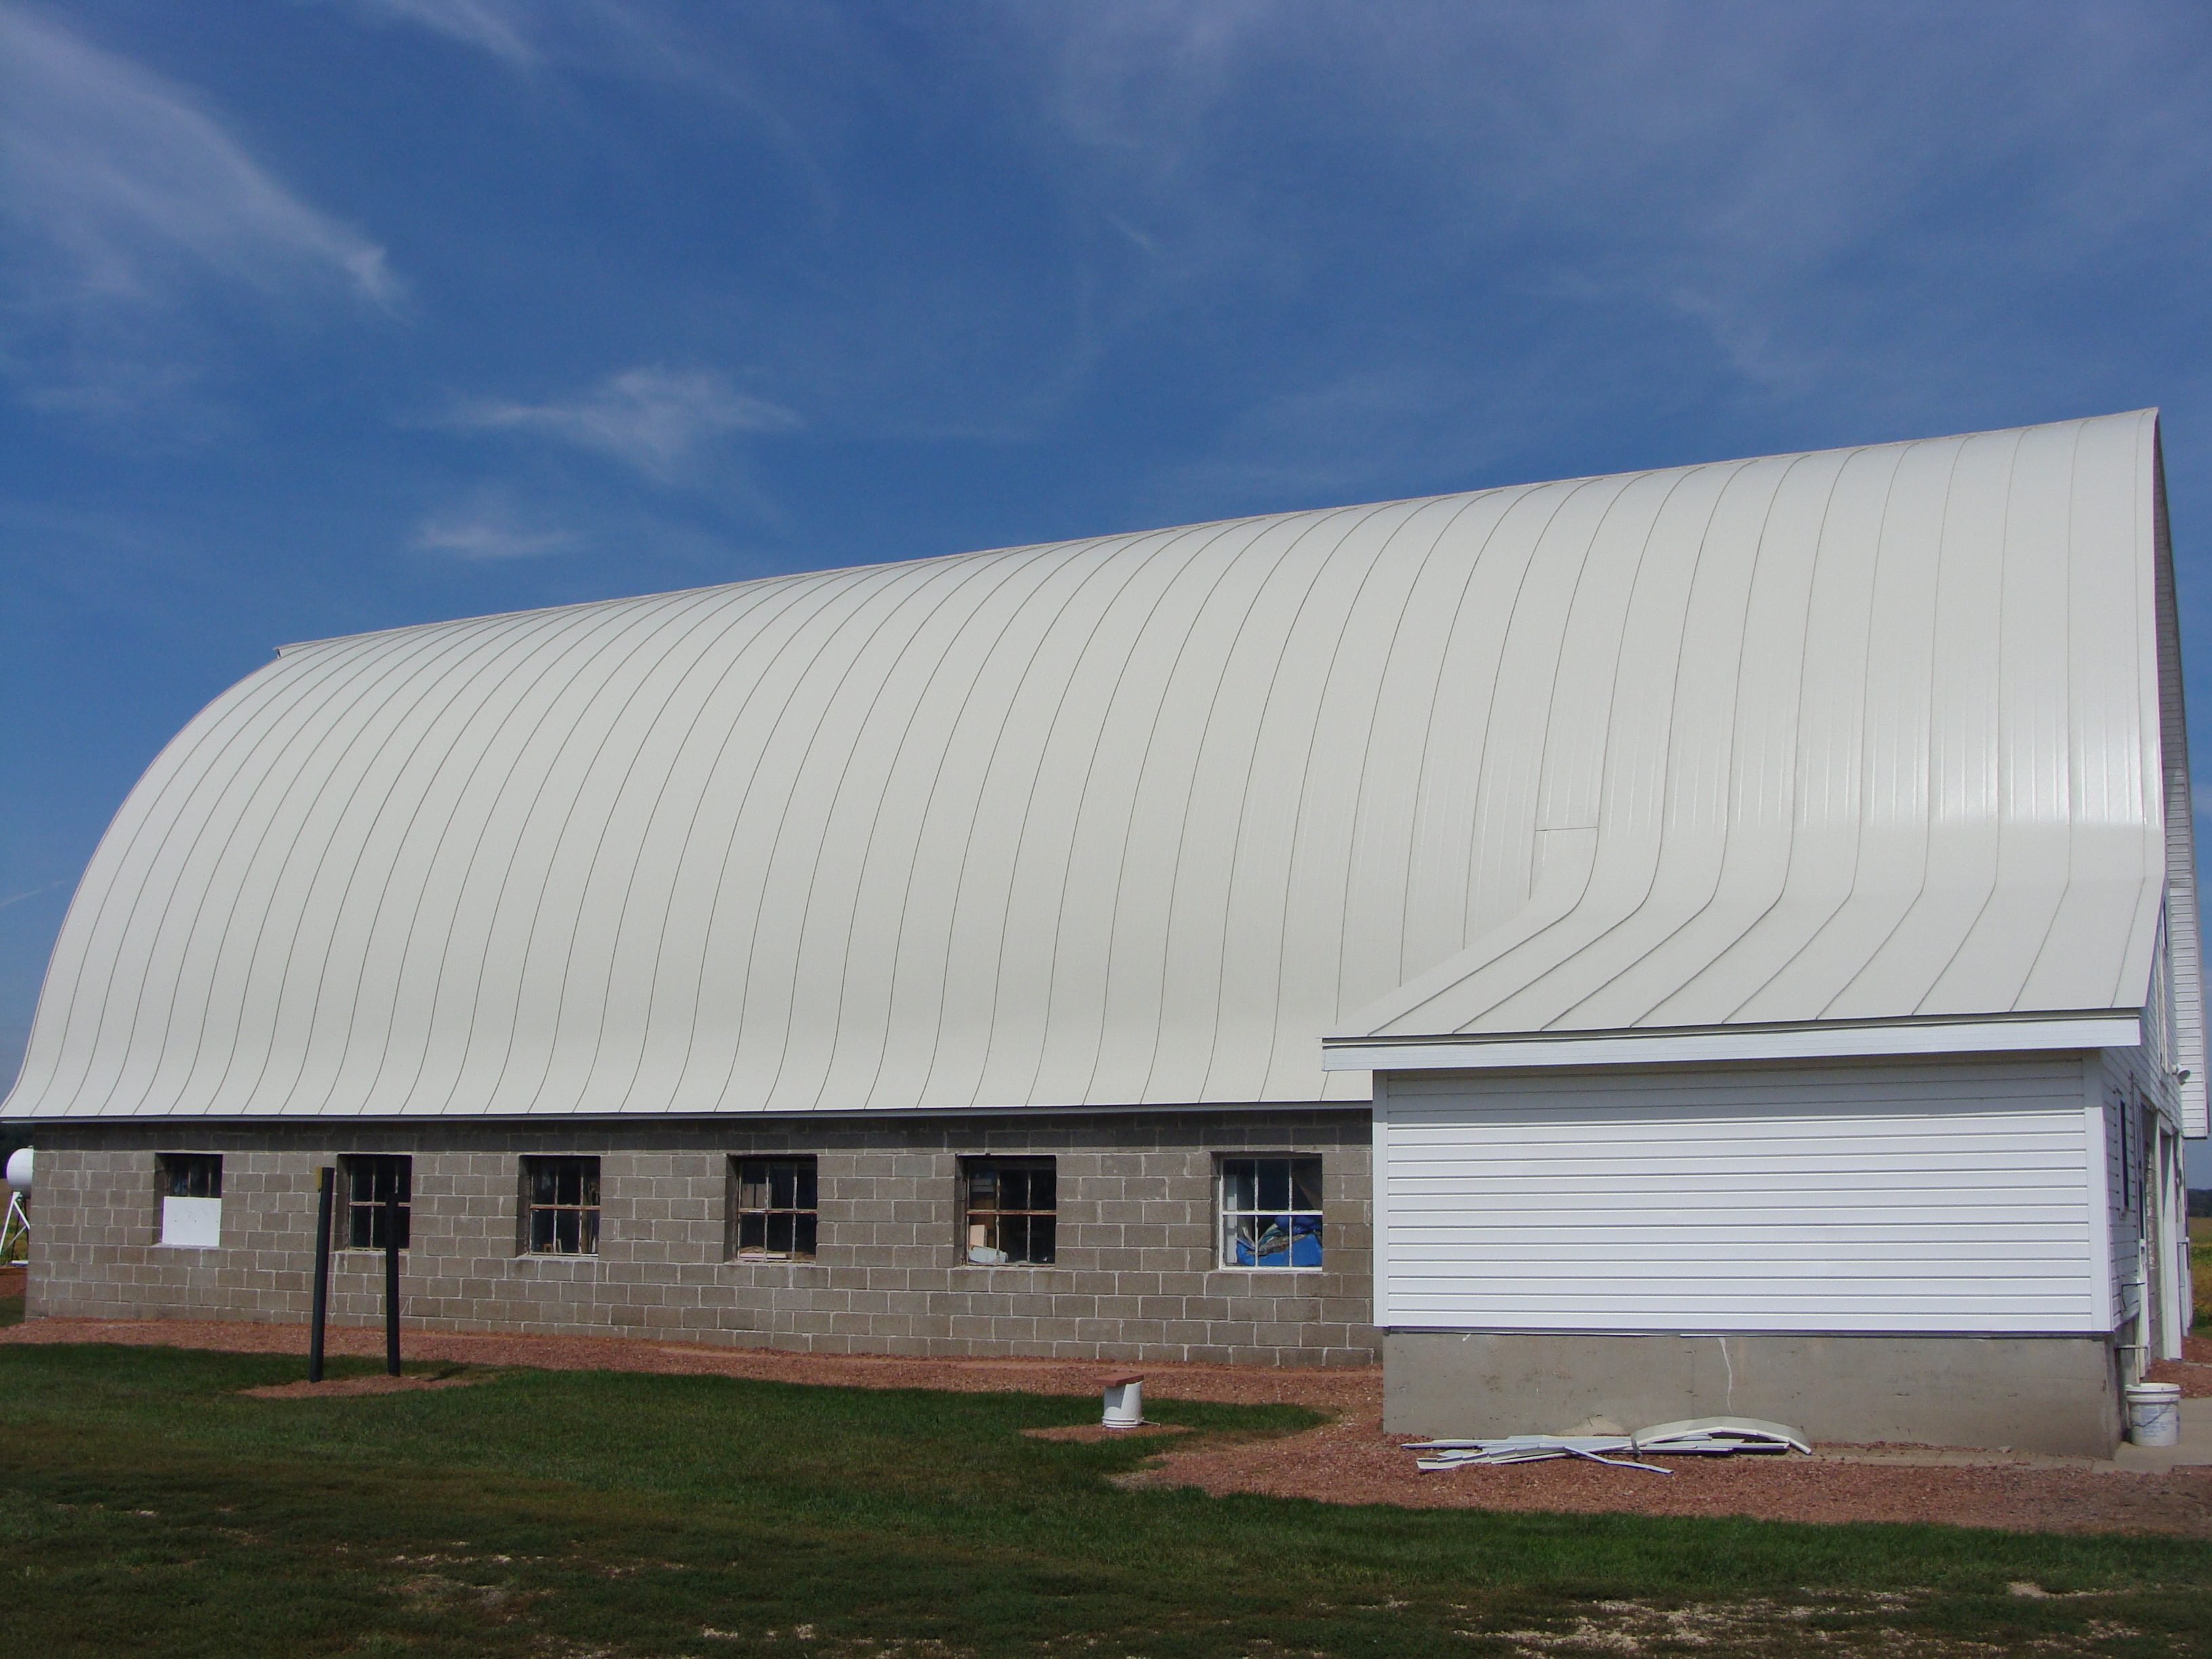 double lock standing seam sheet metal roofing bone white gothic agricultural barn wisconsin iowa illinois minnesota north dakota culpitt